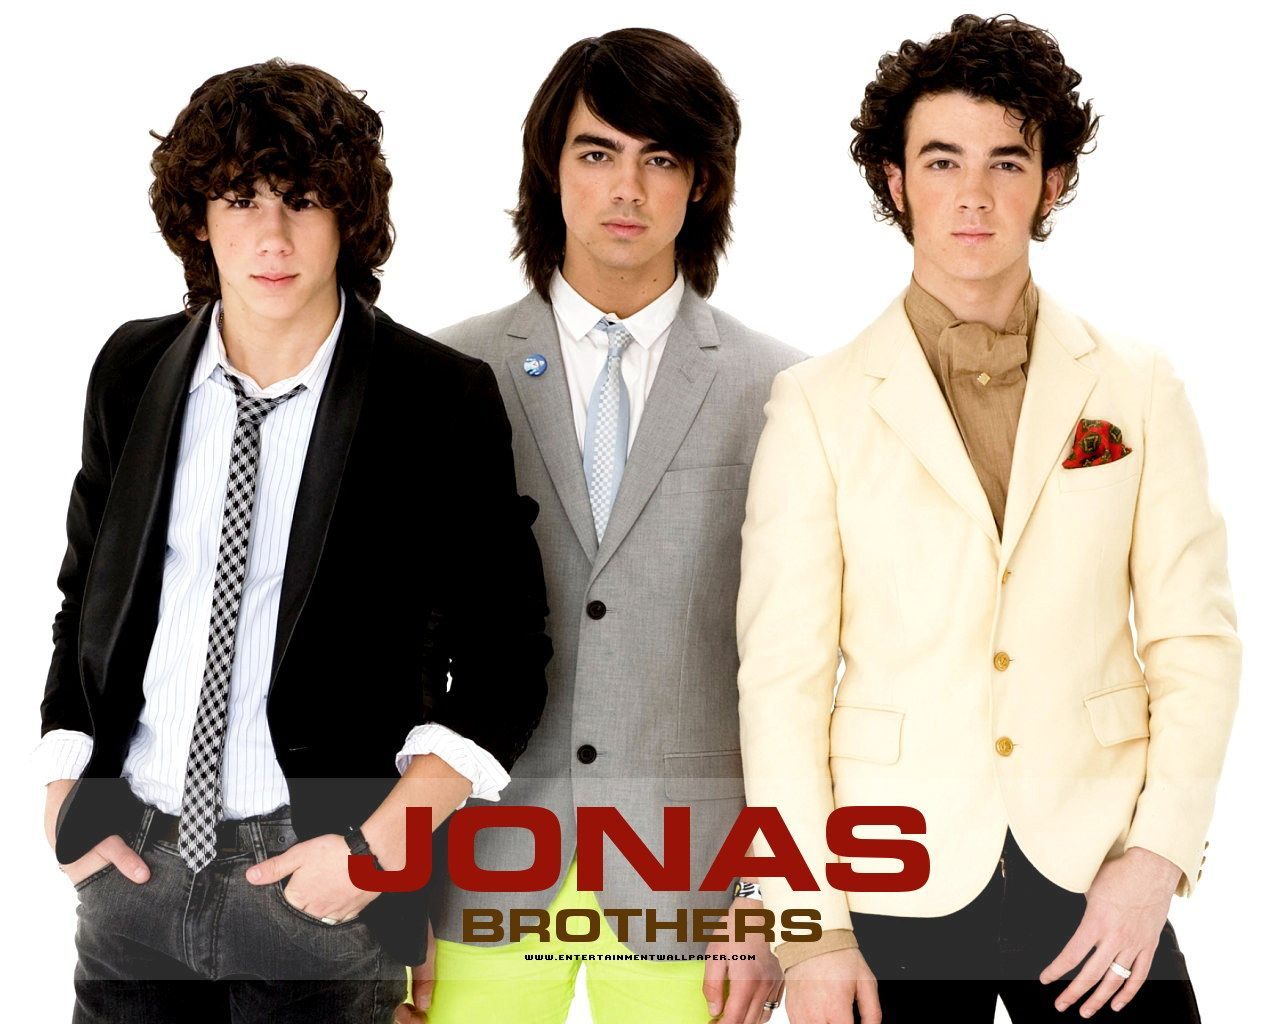 Jonas Brothers Wallpaper - #40014328 (1280x1024) | Desktop ...